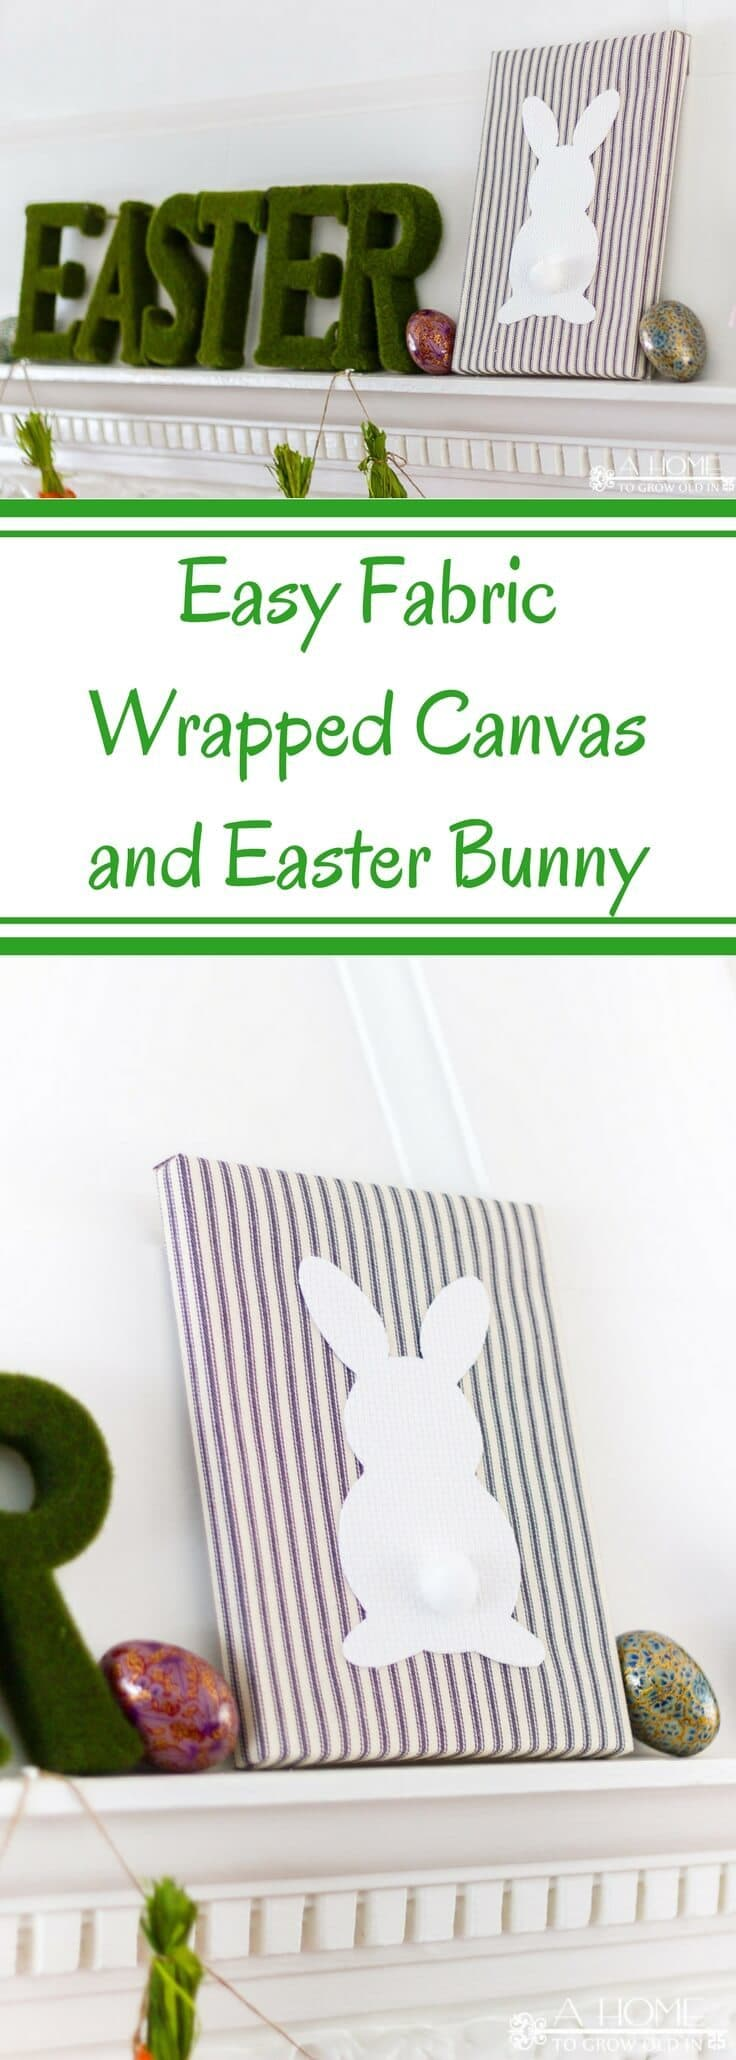 This fabric wrapped canvas with a bunny is perfect for your spring or Easter decorating! It's such a cute and easy DIY!